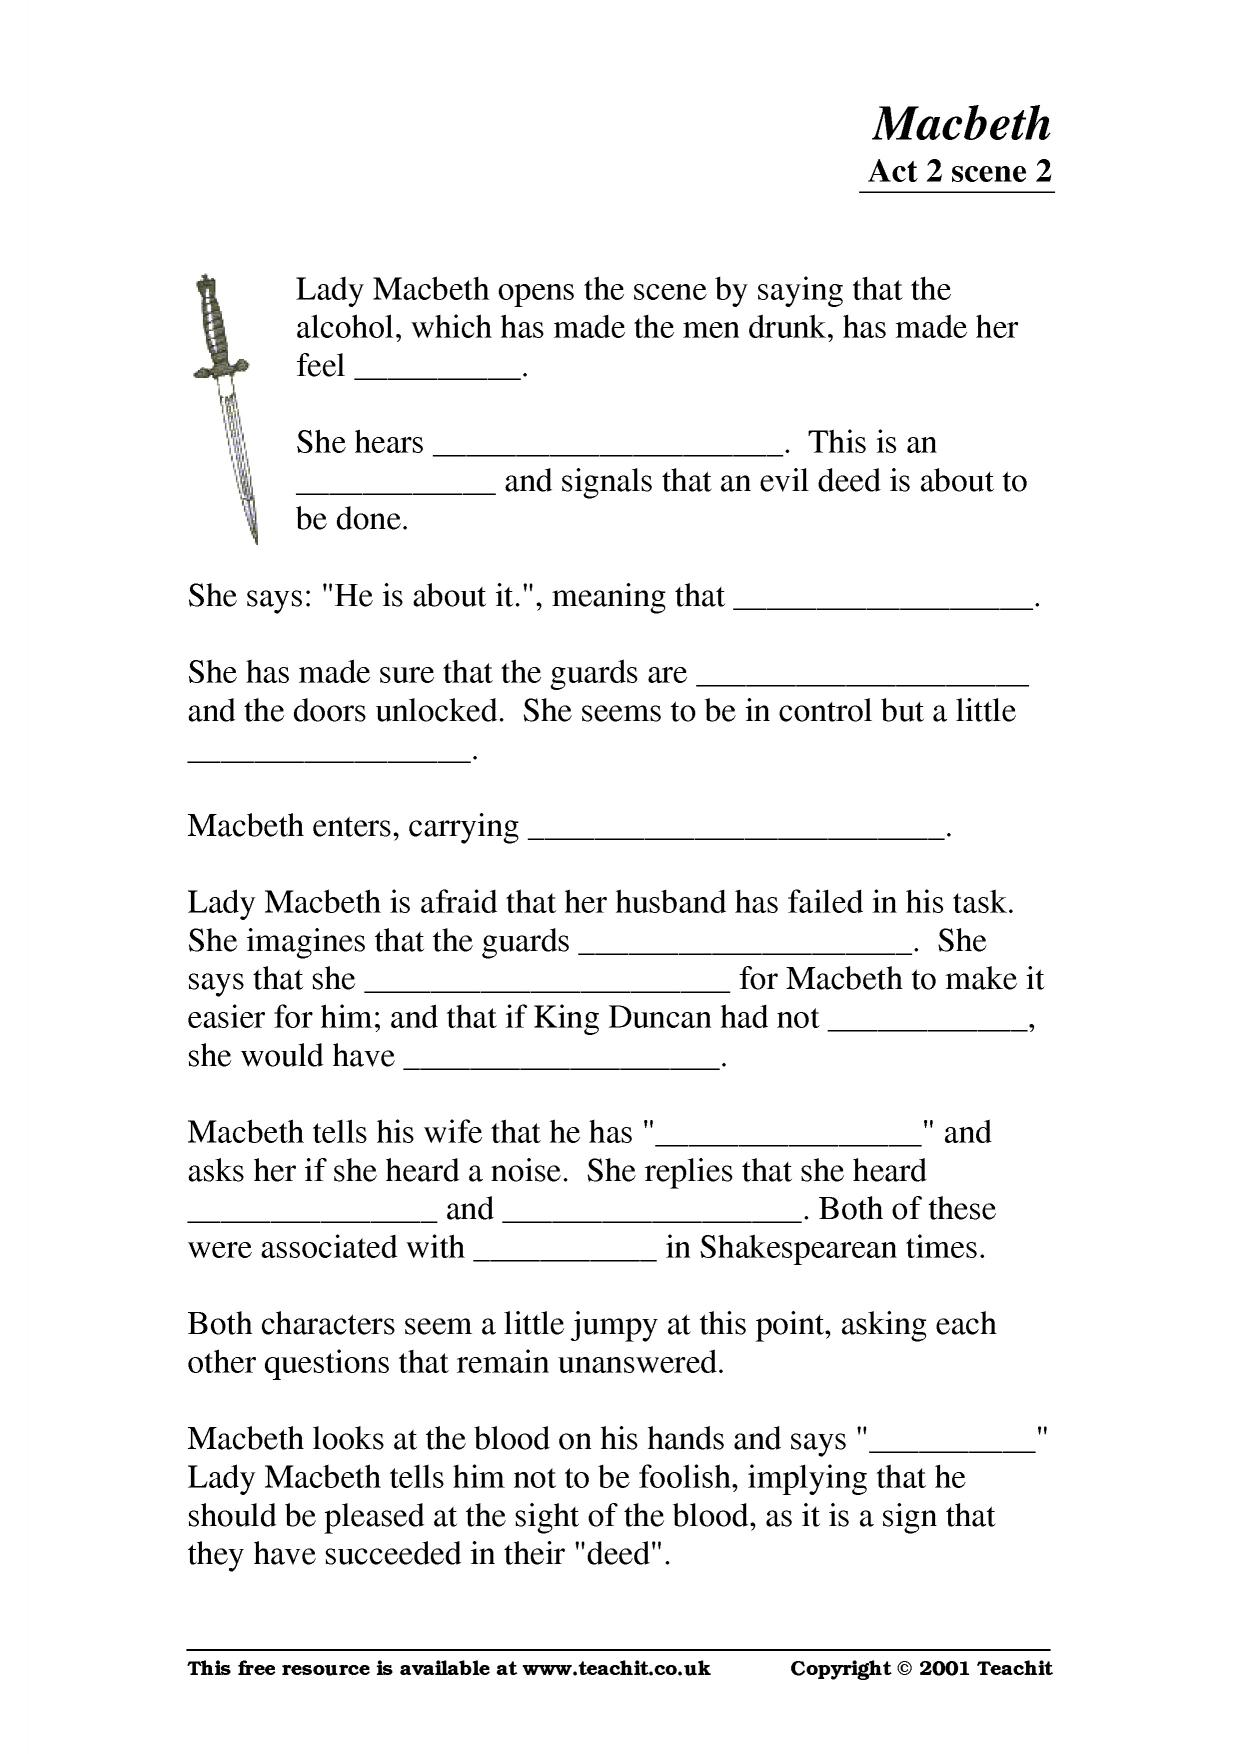 macbeth act 2 scene 2 essay